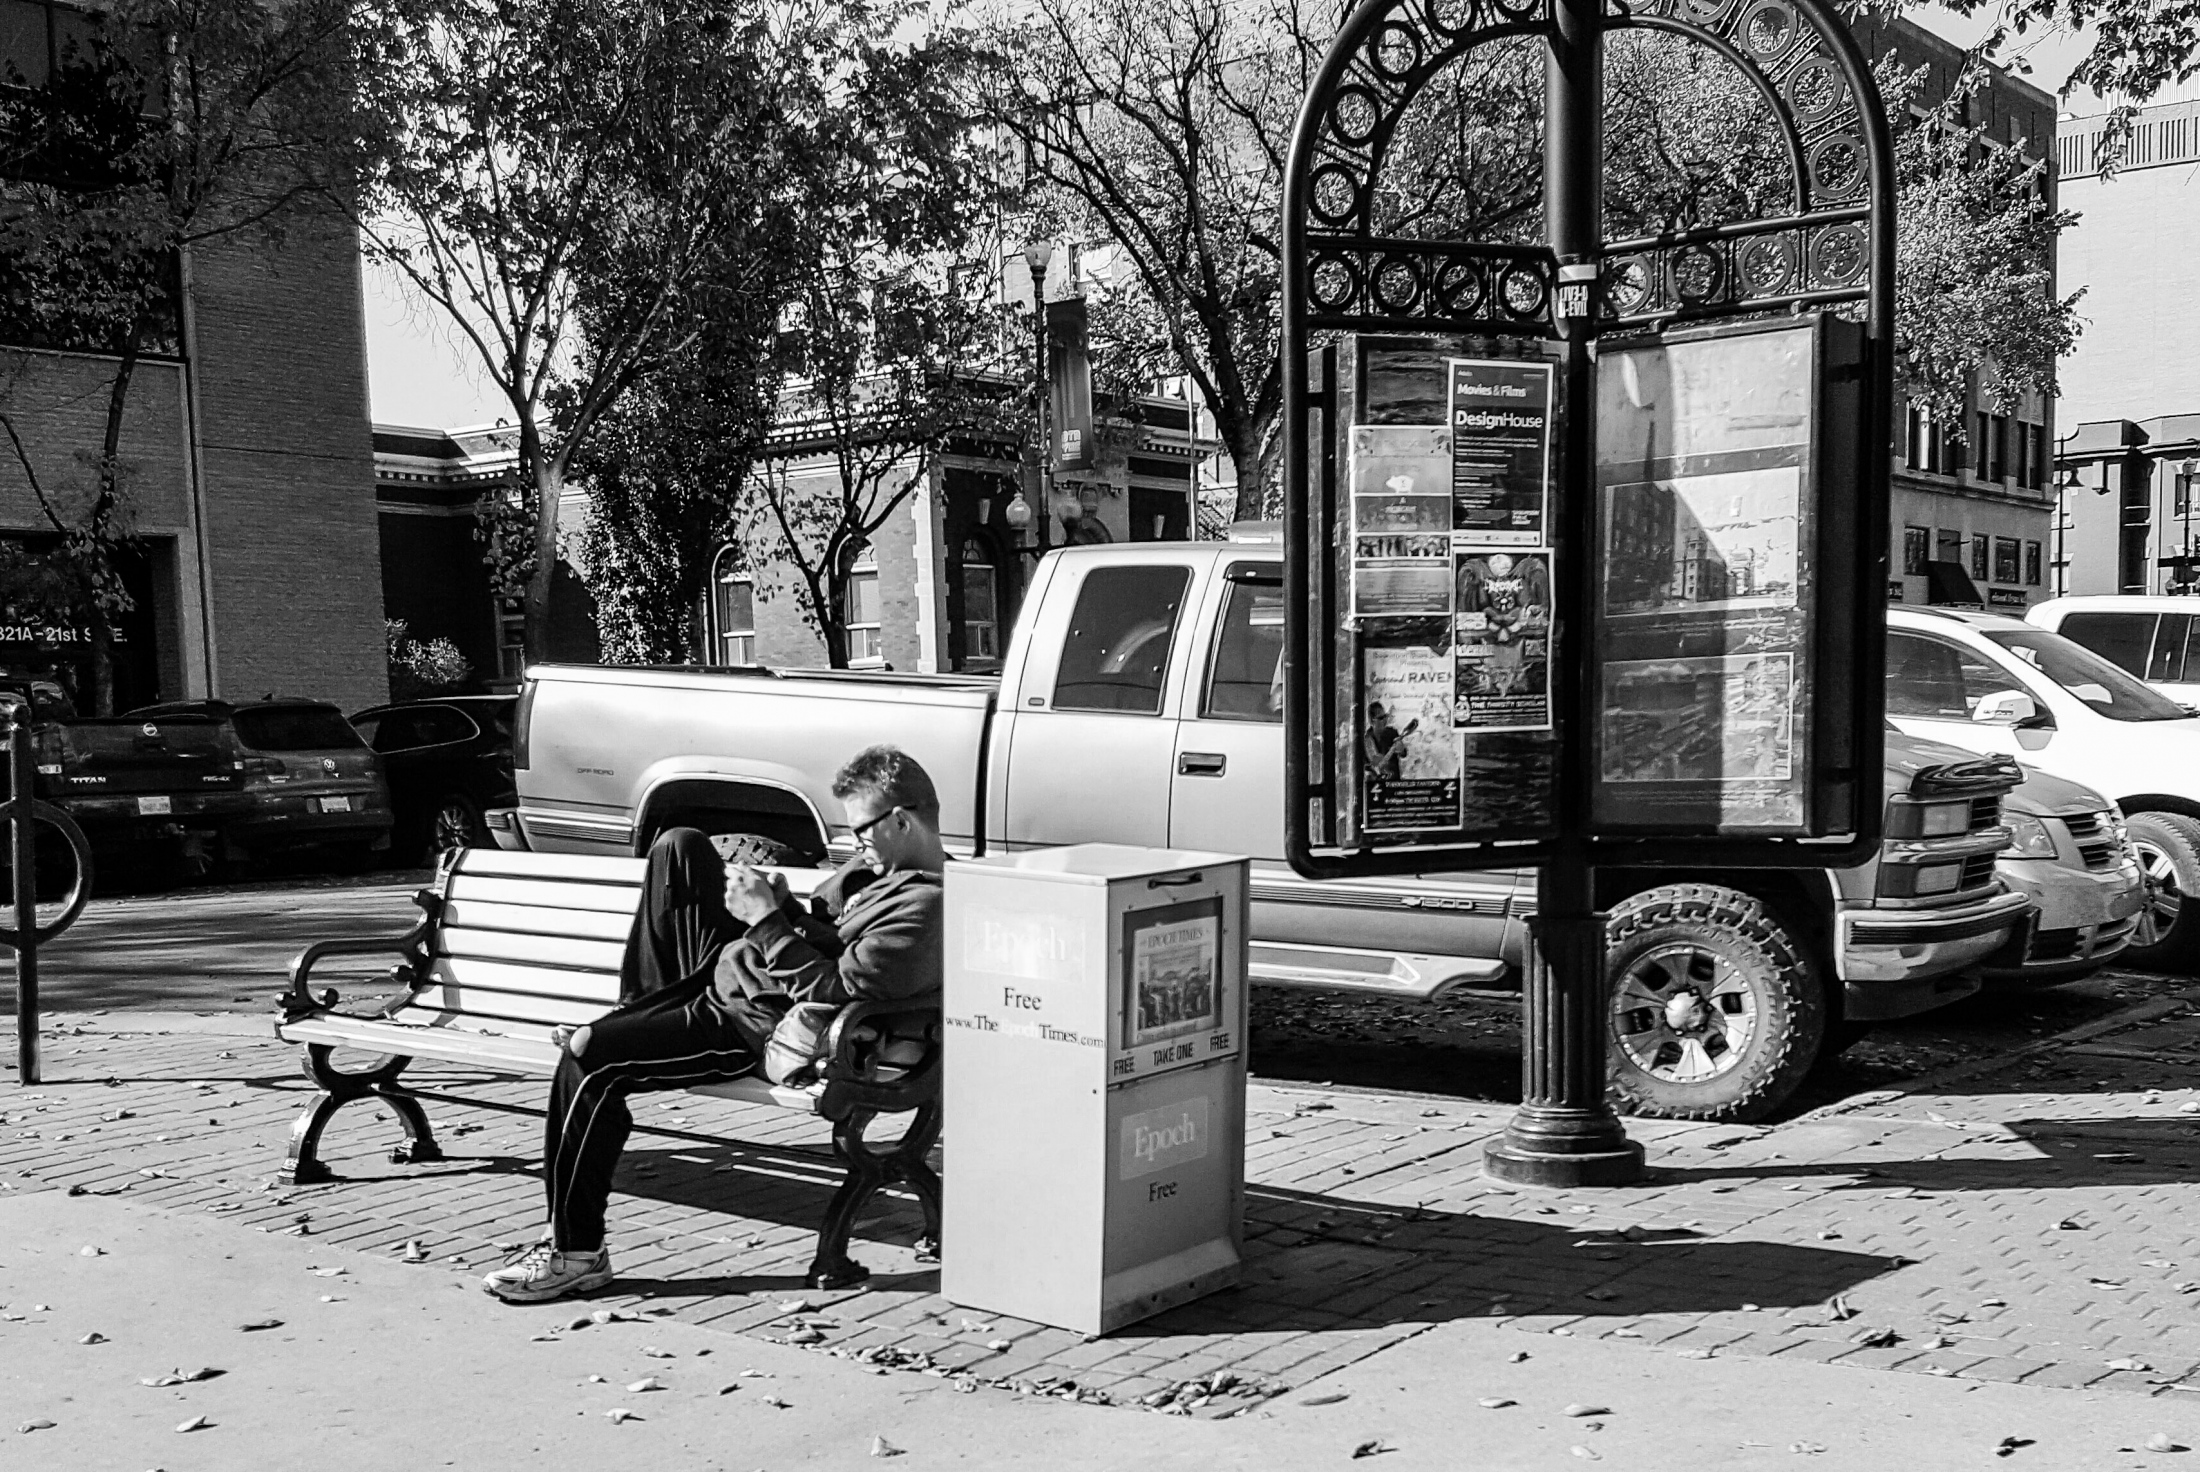 Art and Documentary Photography - Loading Taking_A_Break_on_21st_Street__2016SpencerMcCall.jpg